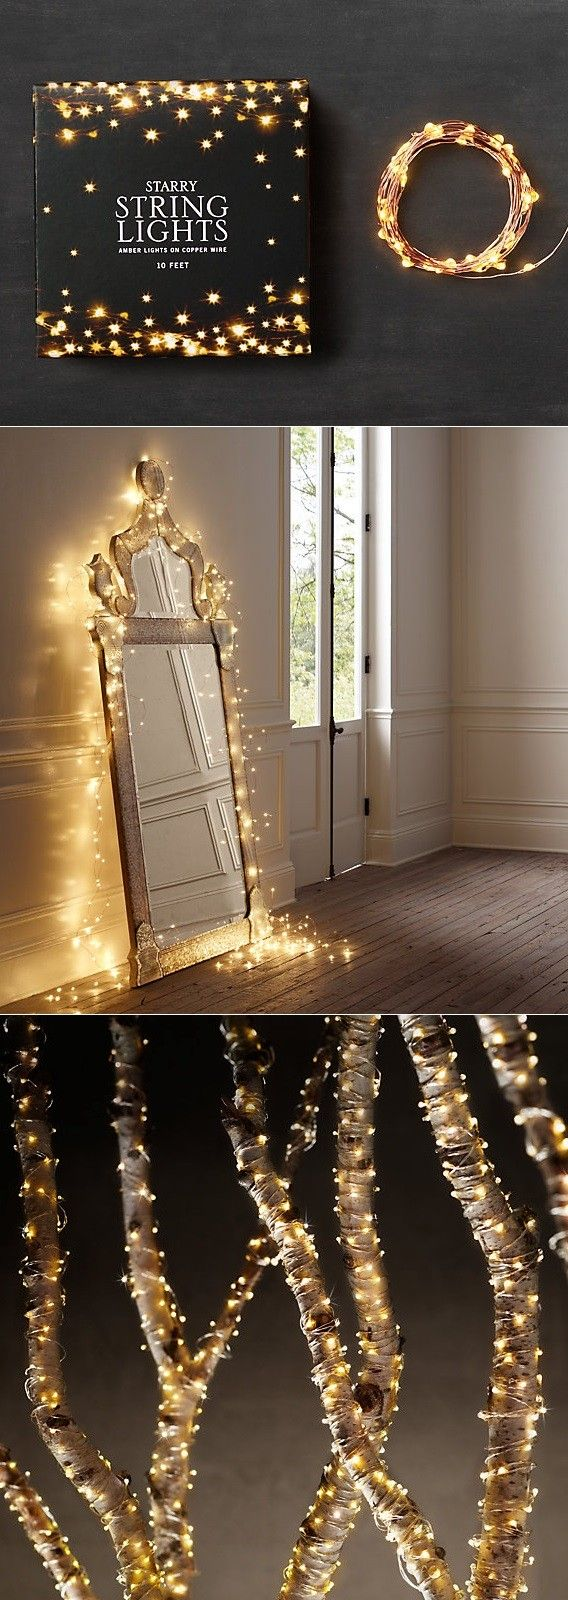 Bedroom decorating ideas for wedding night - Beautiful Starry String Lights